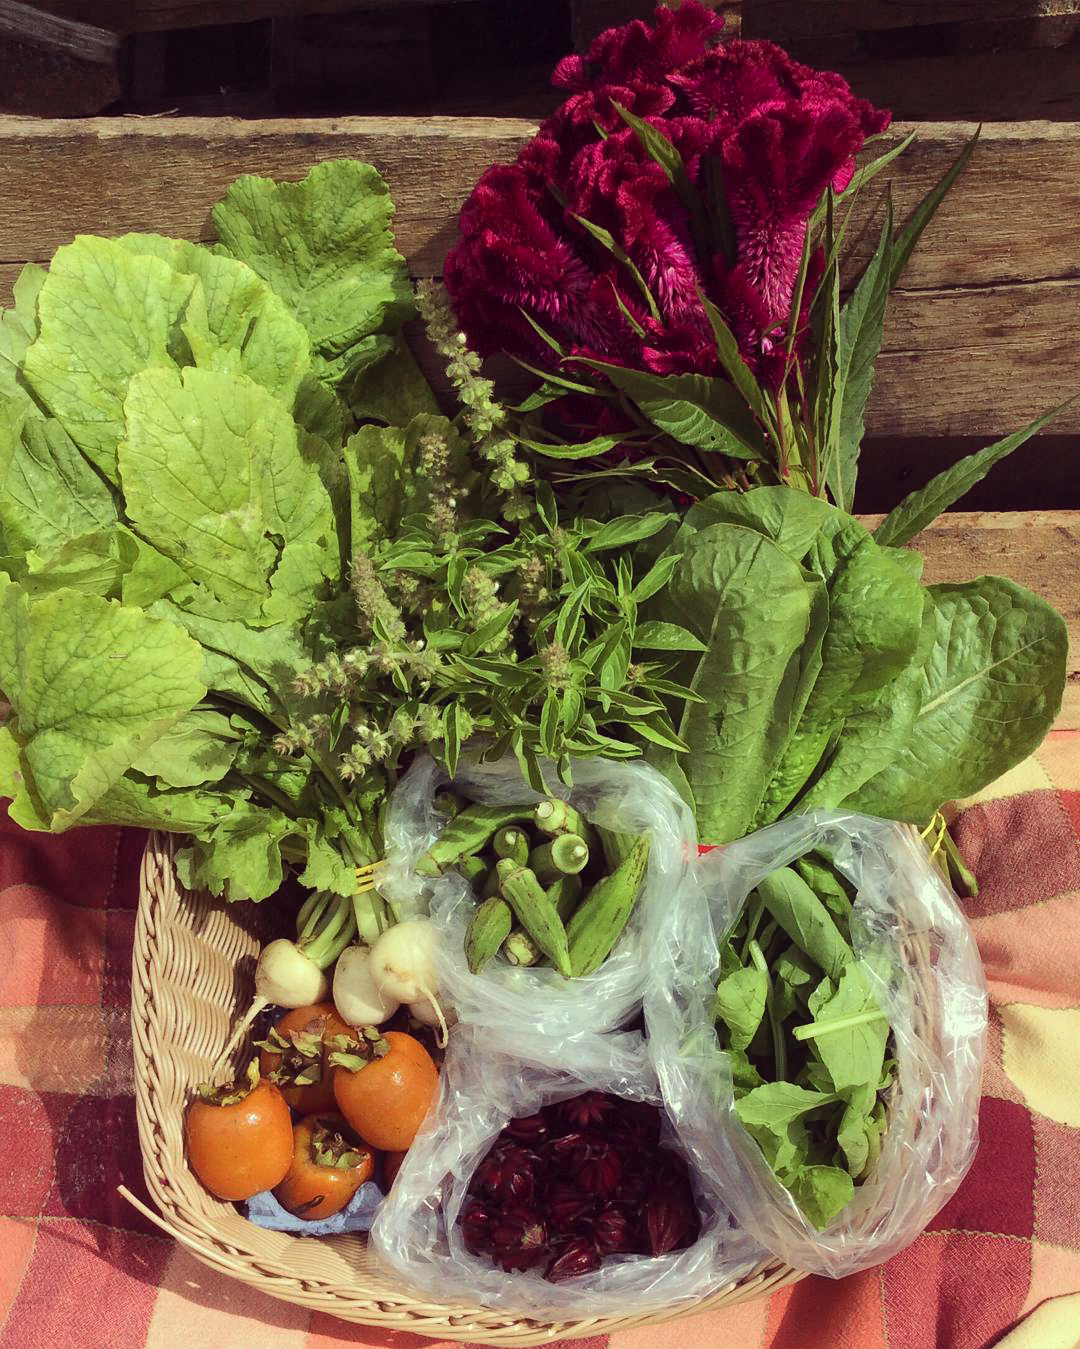 Romaine, Lemon-Lime Basil, Persimmons, Tokyo Turnips, Arugula, Roselle, Okra and a Celosia Bouquet!